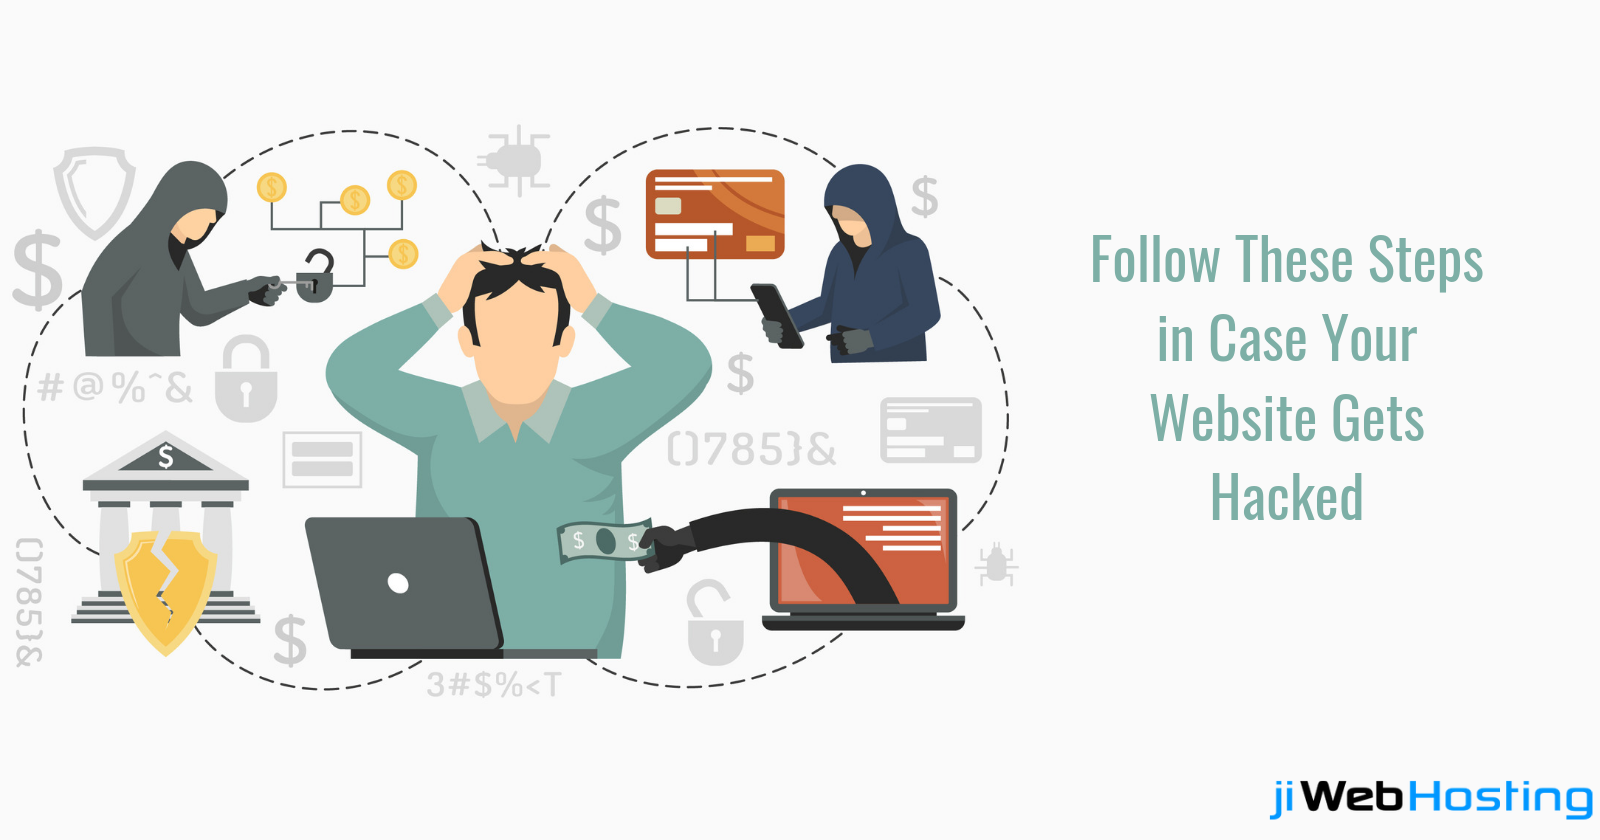 Follow These Steps in Case Your Website Gets Hacked